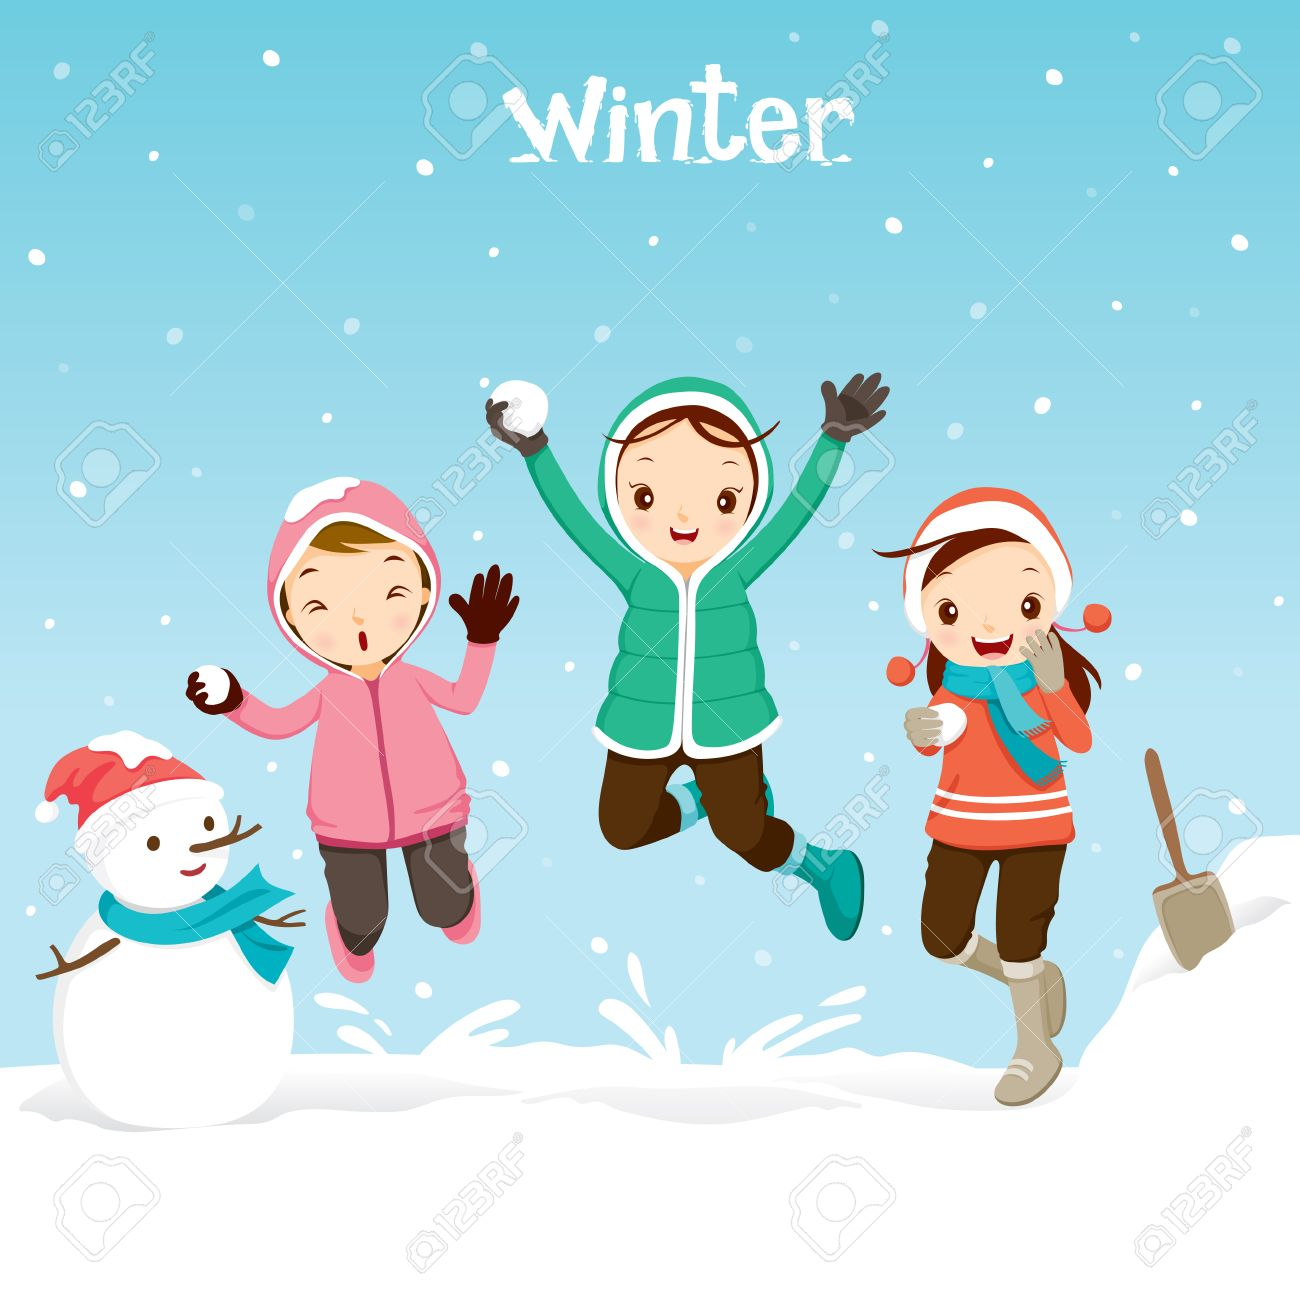 Children Playing Snow Together, Activity, Travel, Winter, Season,